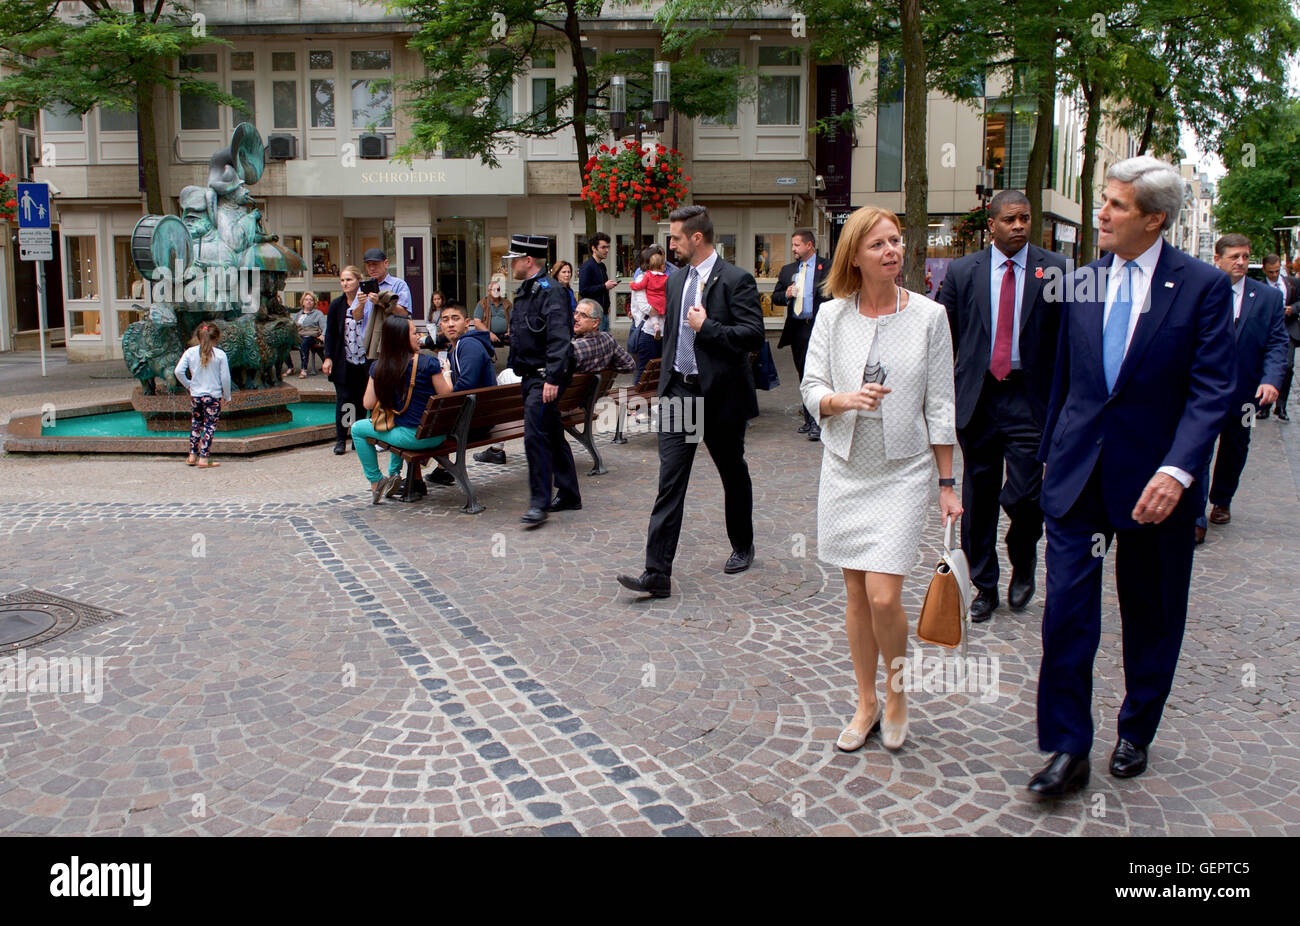 Secretary Kerry Chats With Luxembourgian Chief of Protocol in Luxembourg City - Stock Image